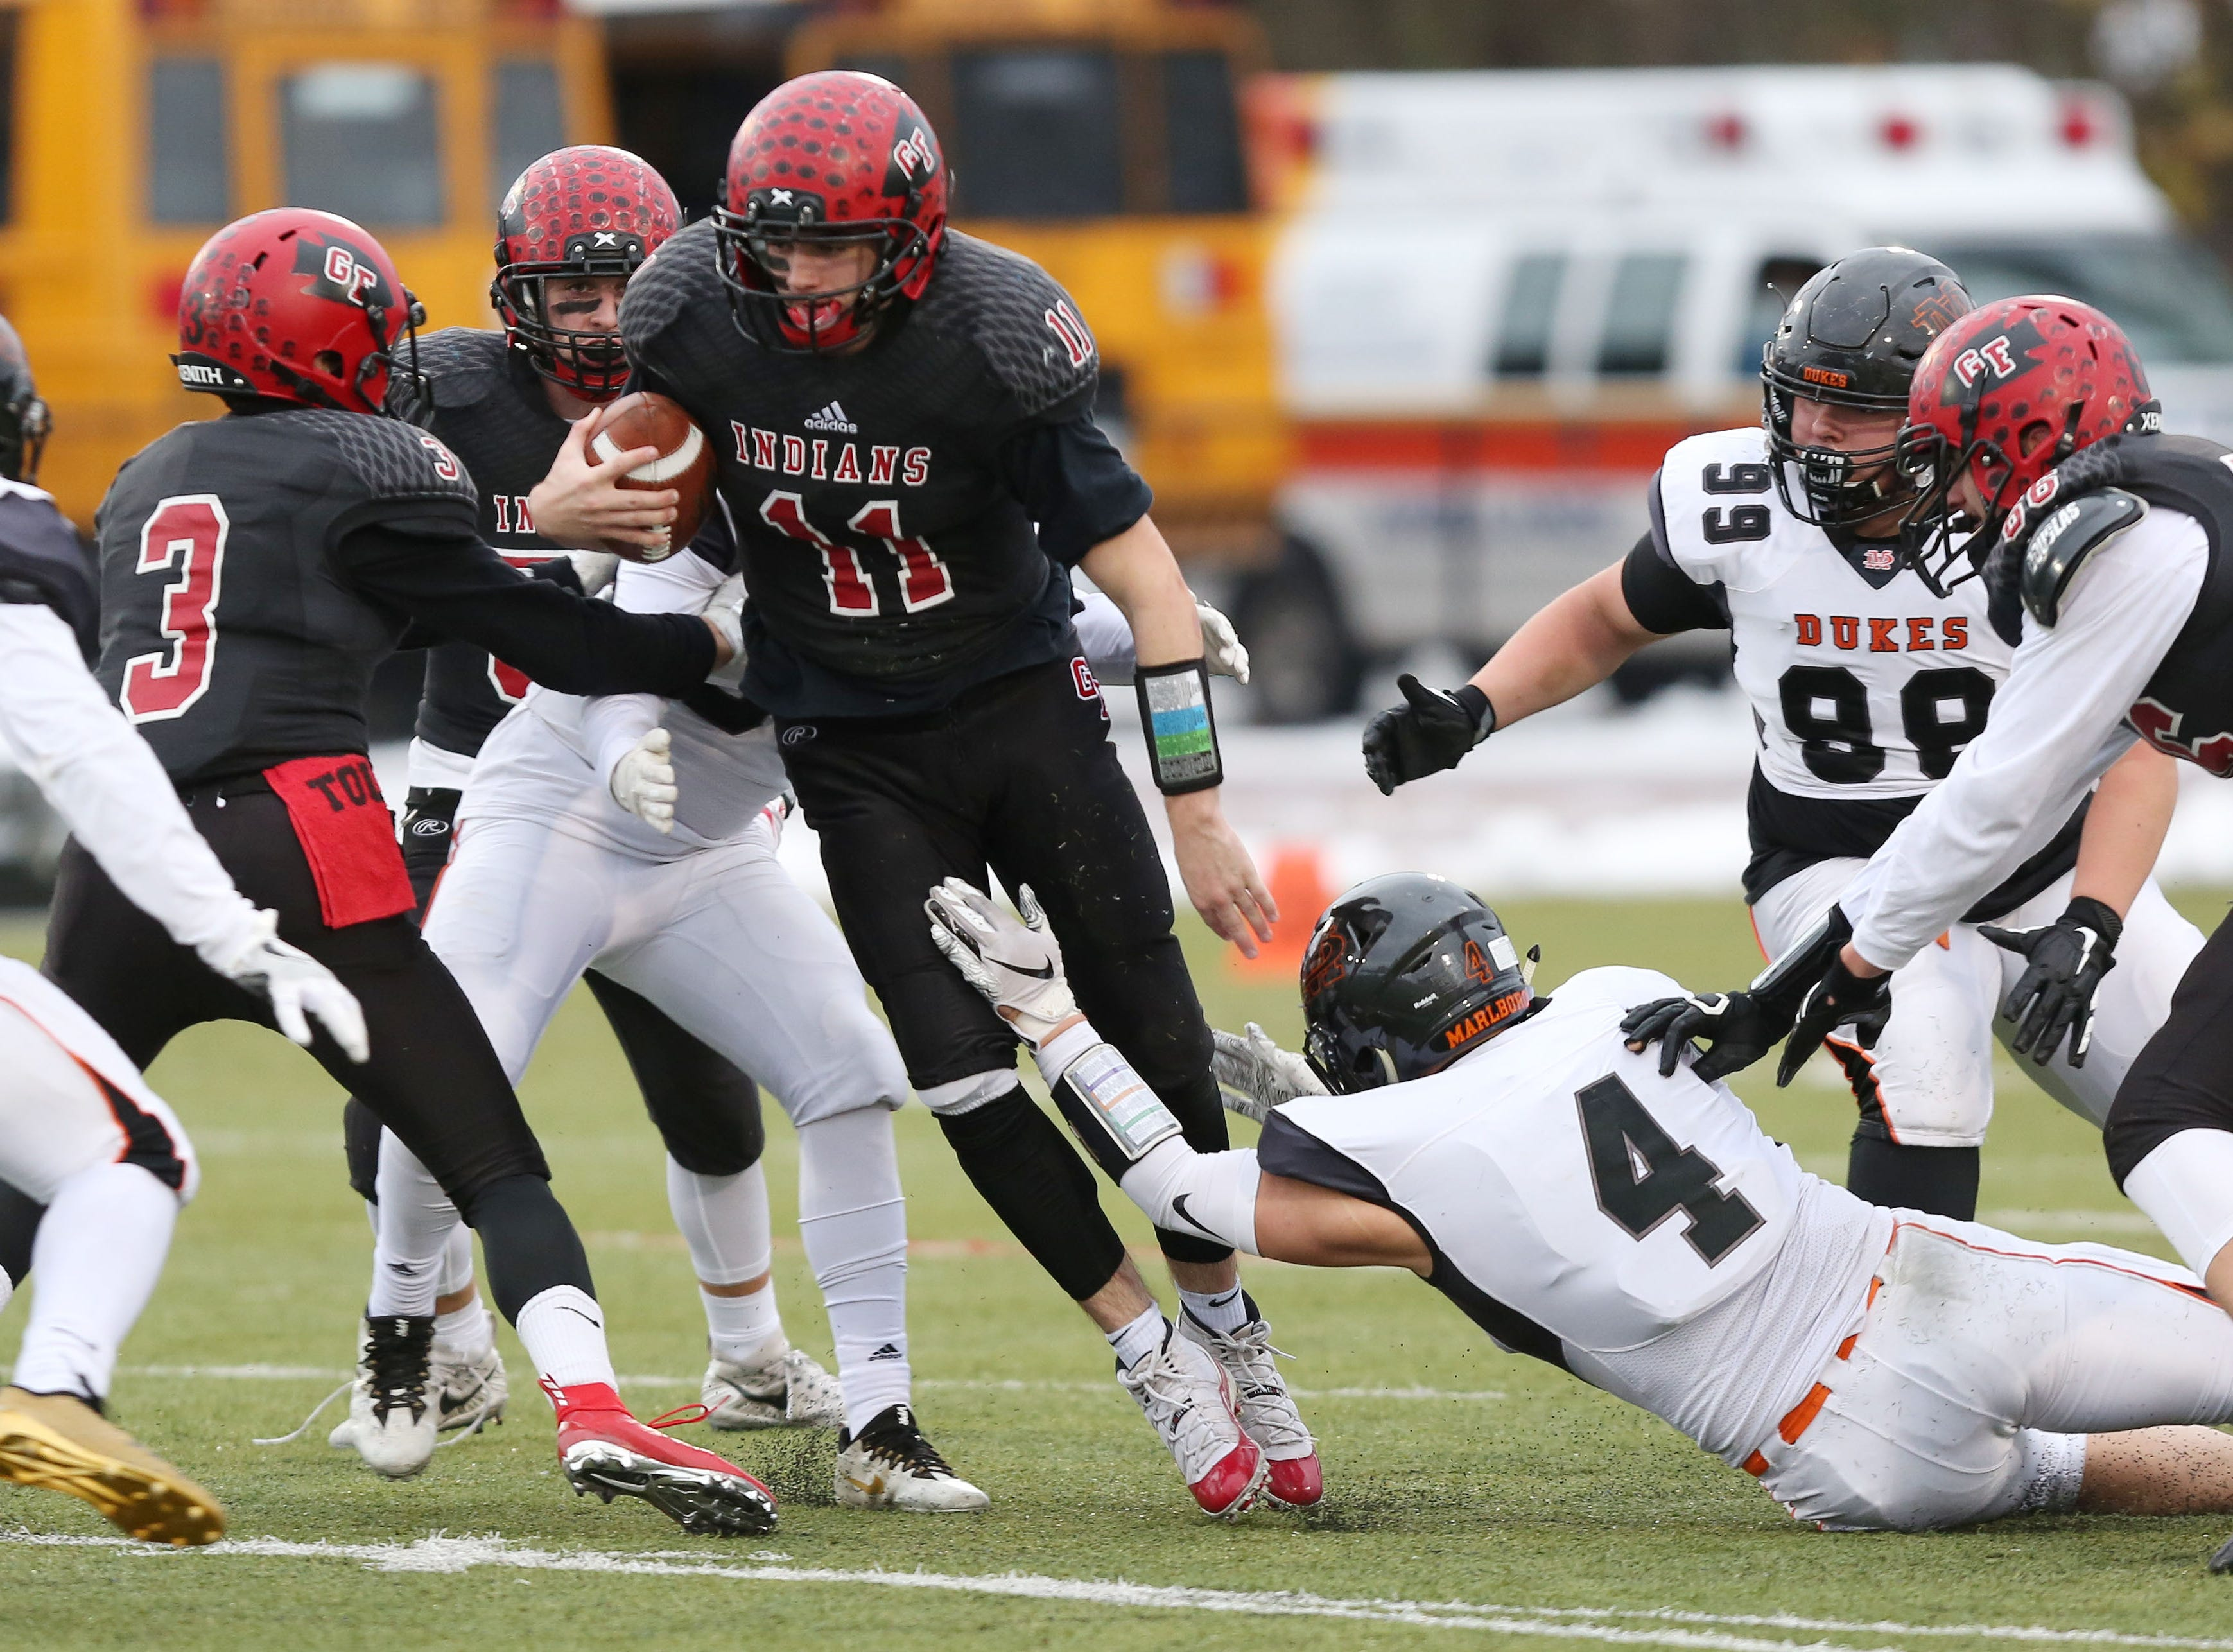 Glens Falls' Joe Girard looks for some running room in the Marlboro  defense during the state Class B semifinal game at Middletown High School Nov. 17, 2018.  Girard and the Indians face Batavia in Saturday's state championship game.